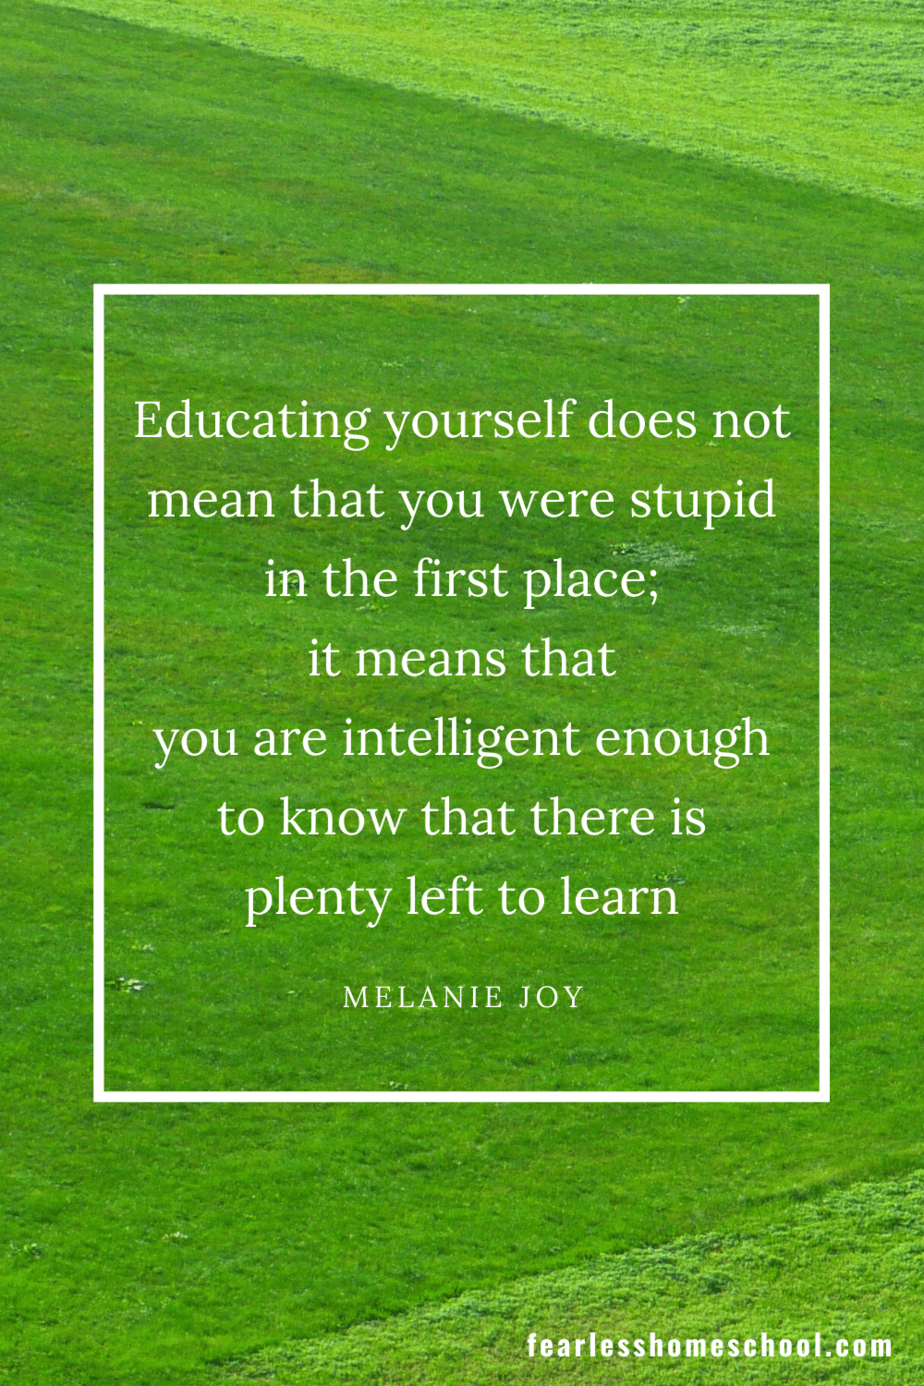 Educating yourself does not mean that you were stupid in the first place; it means that you are intelligent enough to know that there is plenty left to learn melanie joy homeschooling quote